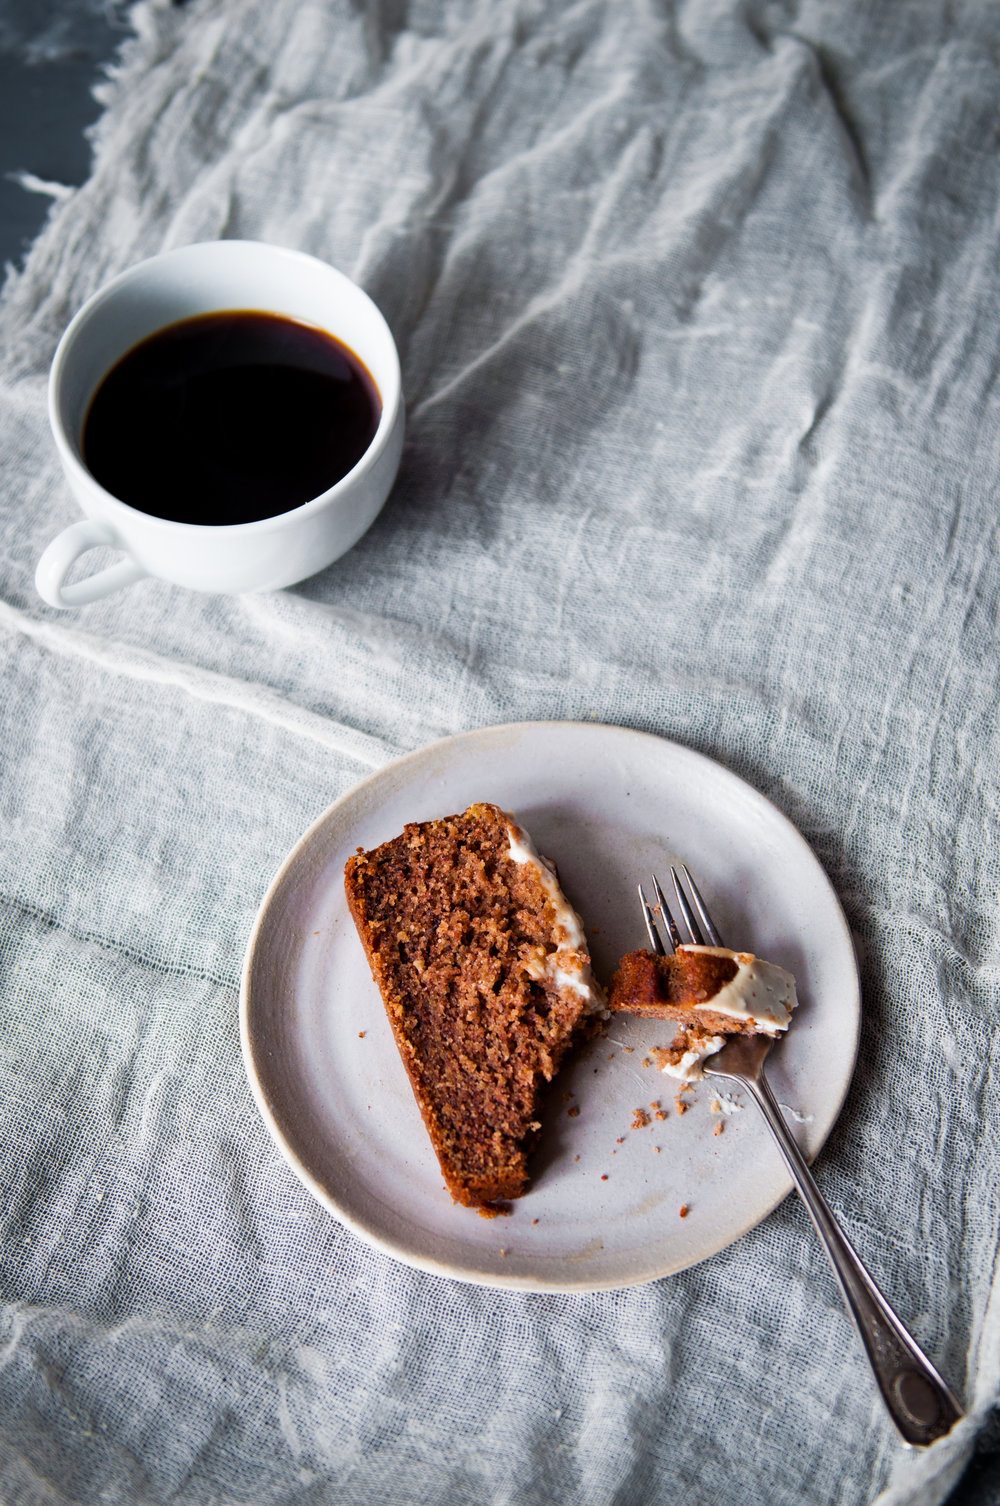 slice-banana-loaf-with-coffee.jpg